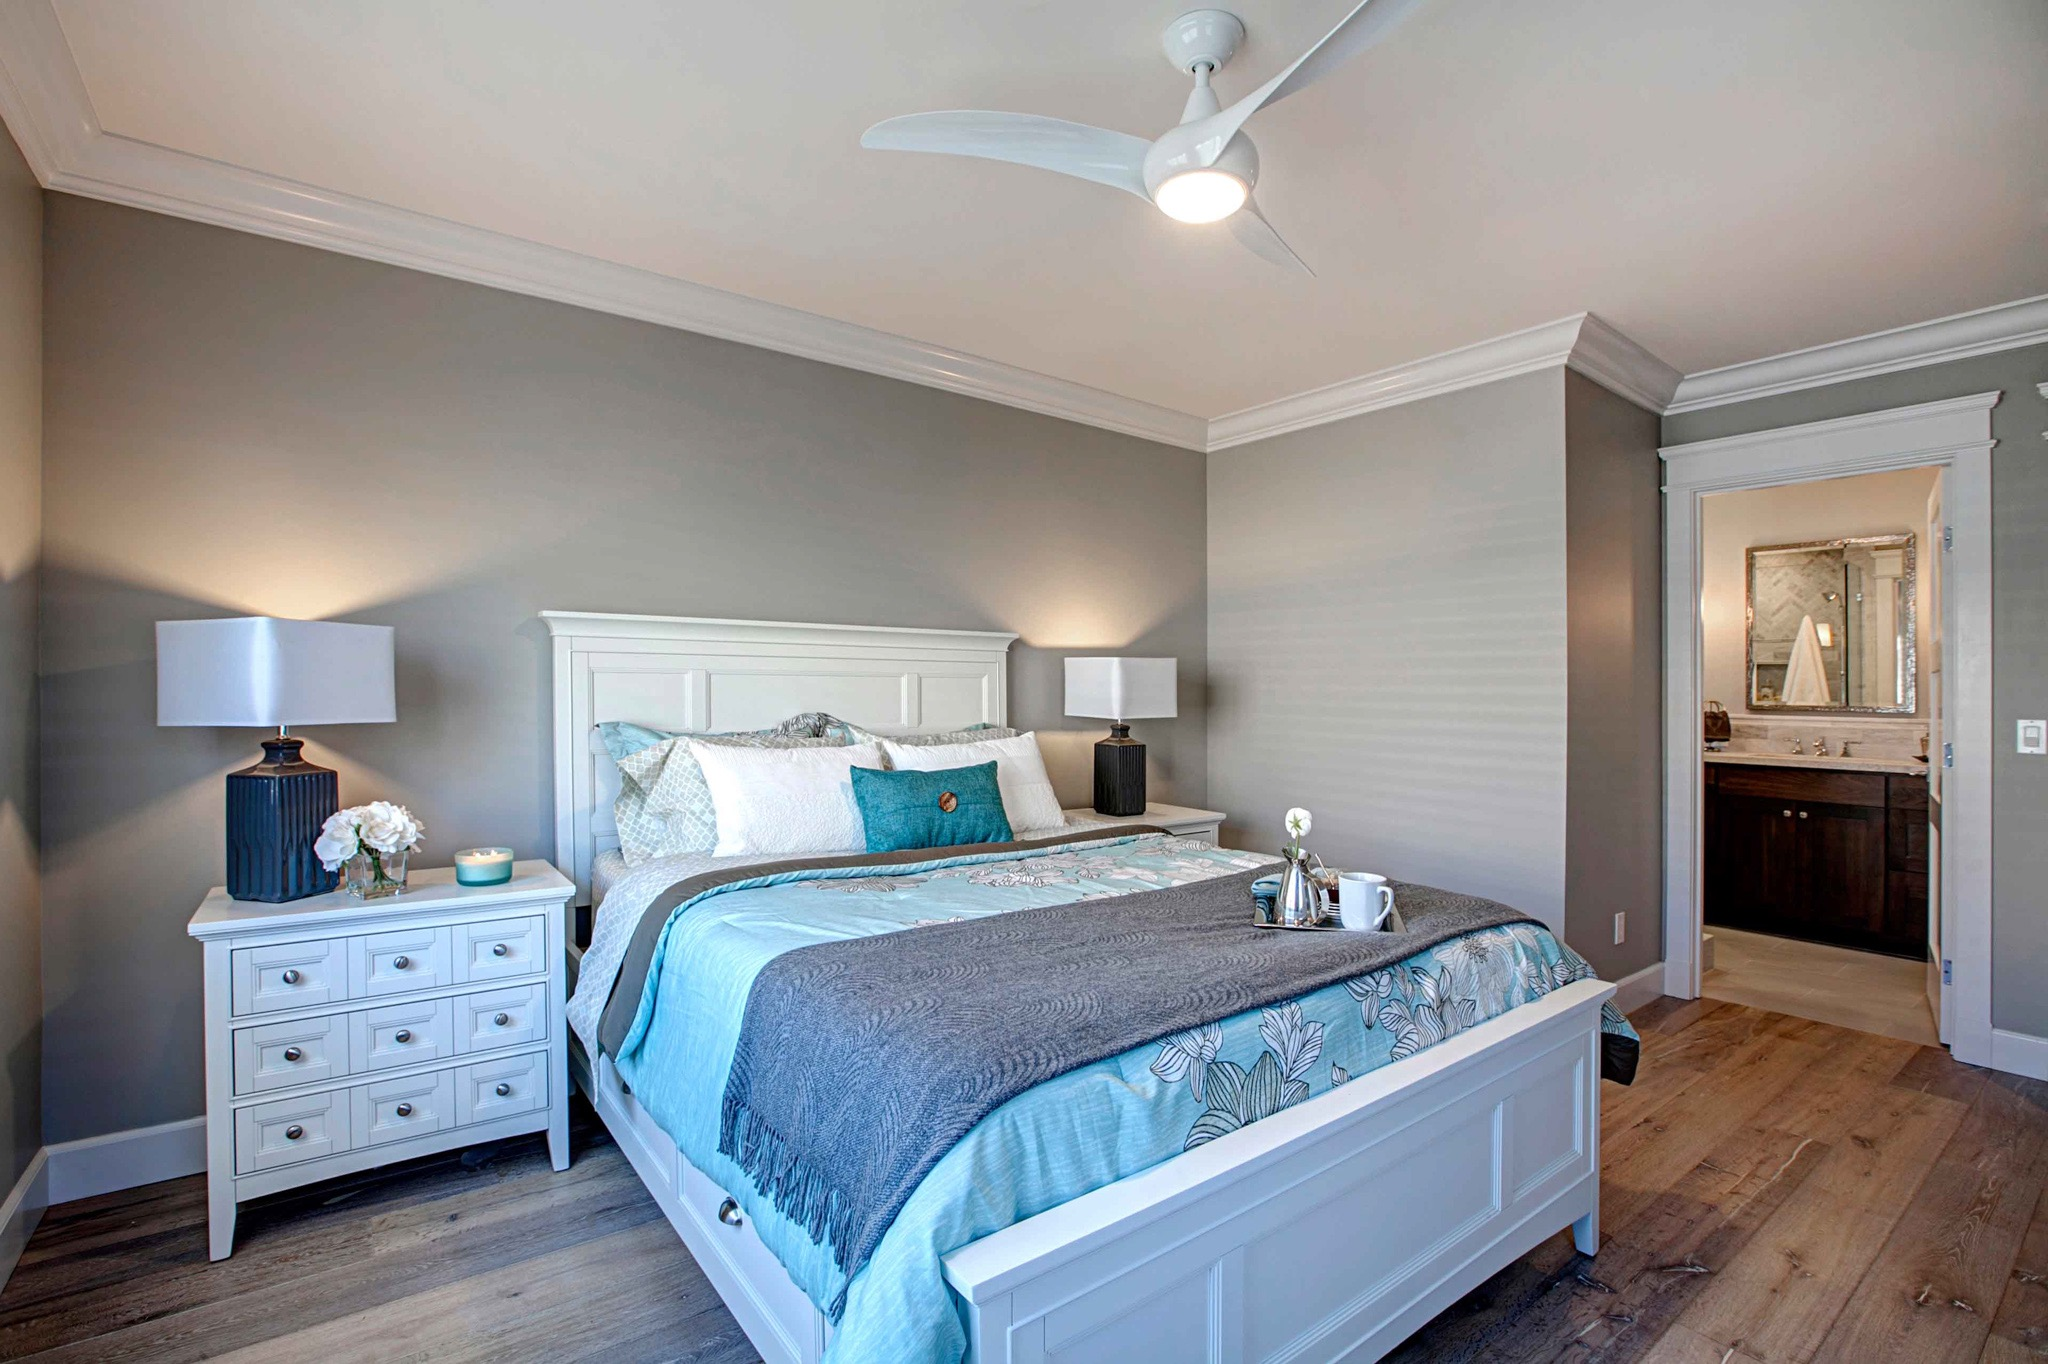 Soothing Gray Master Bedroom Suite Remodel With Blue Bedding (Image 25 of 28)